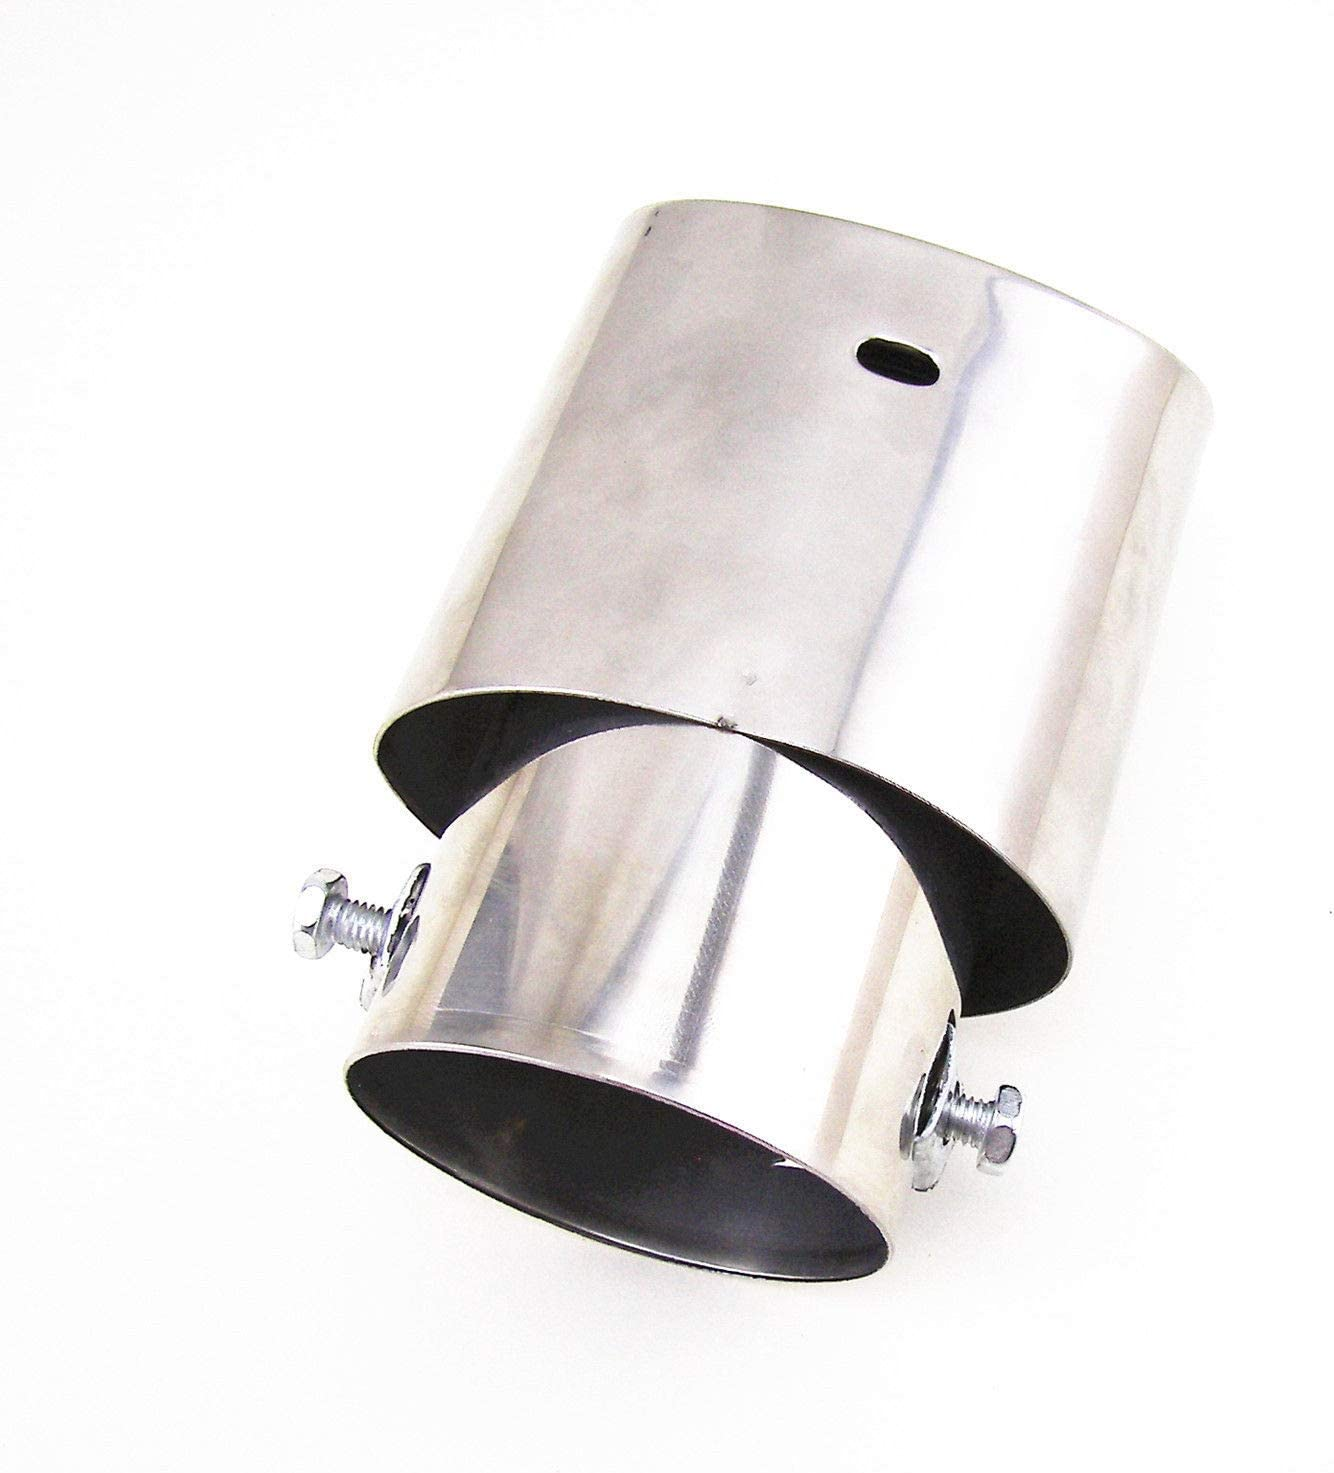 Vosarea Car Universal Stainless Steel Auto Exhaust Tail Tip Pipe Cover Muffler Oval Opening